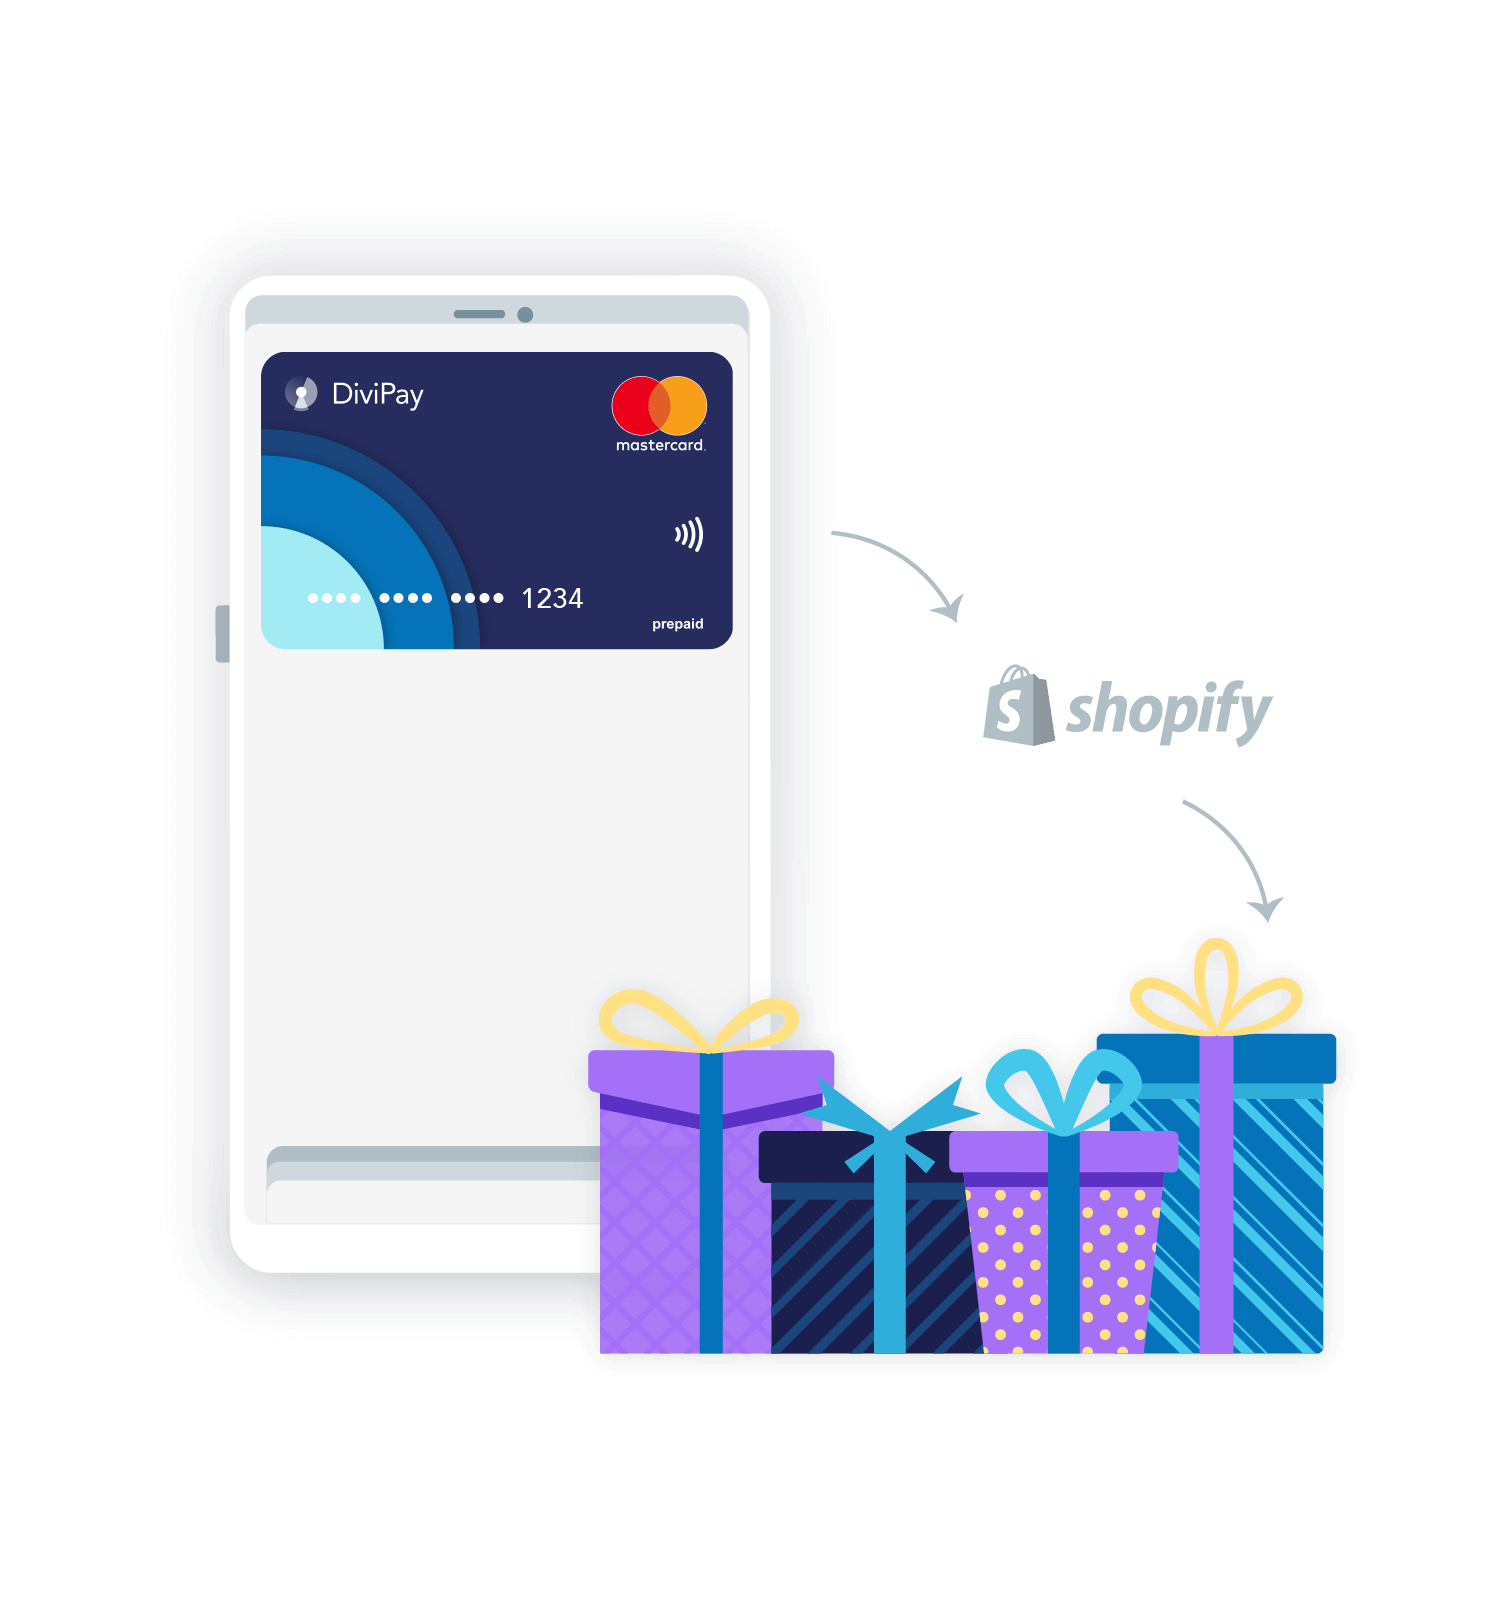 Shopify discount codes with DiviPay